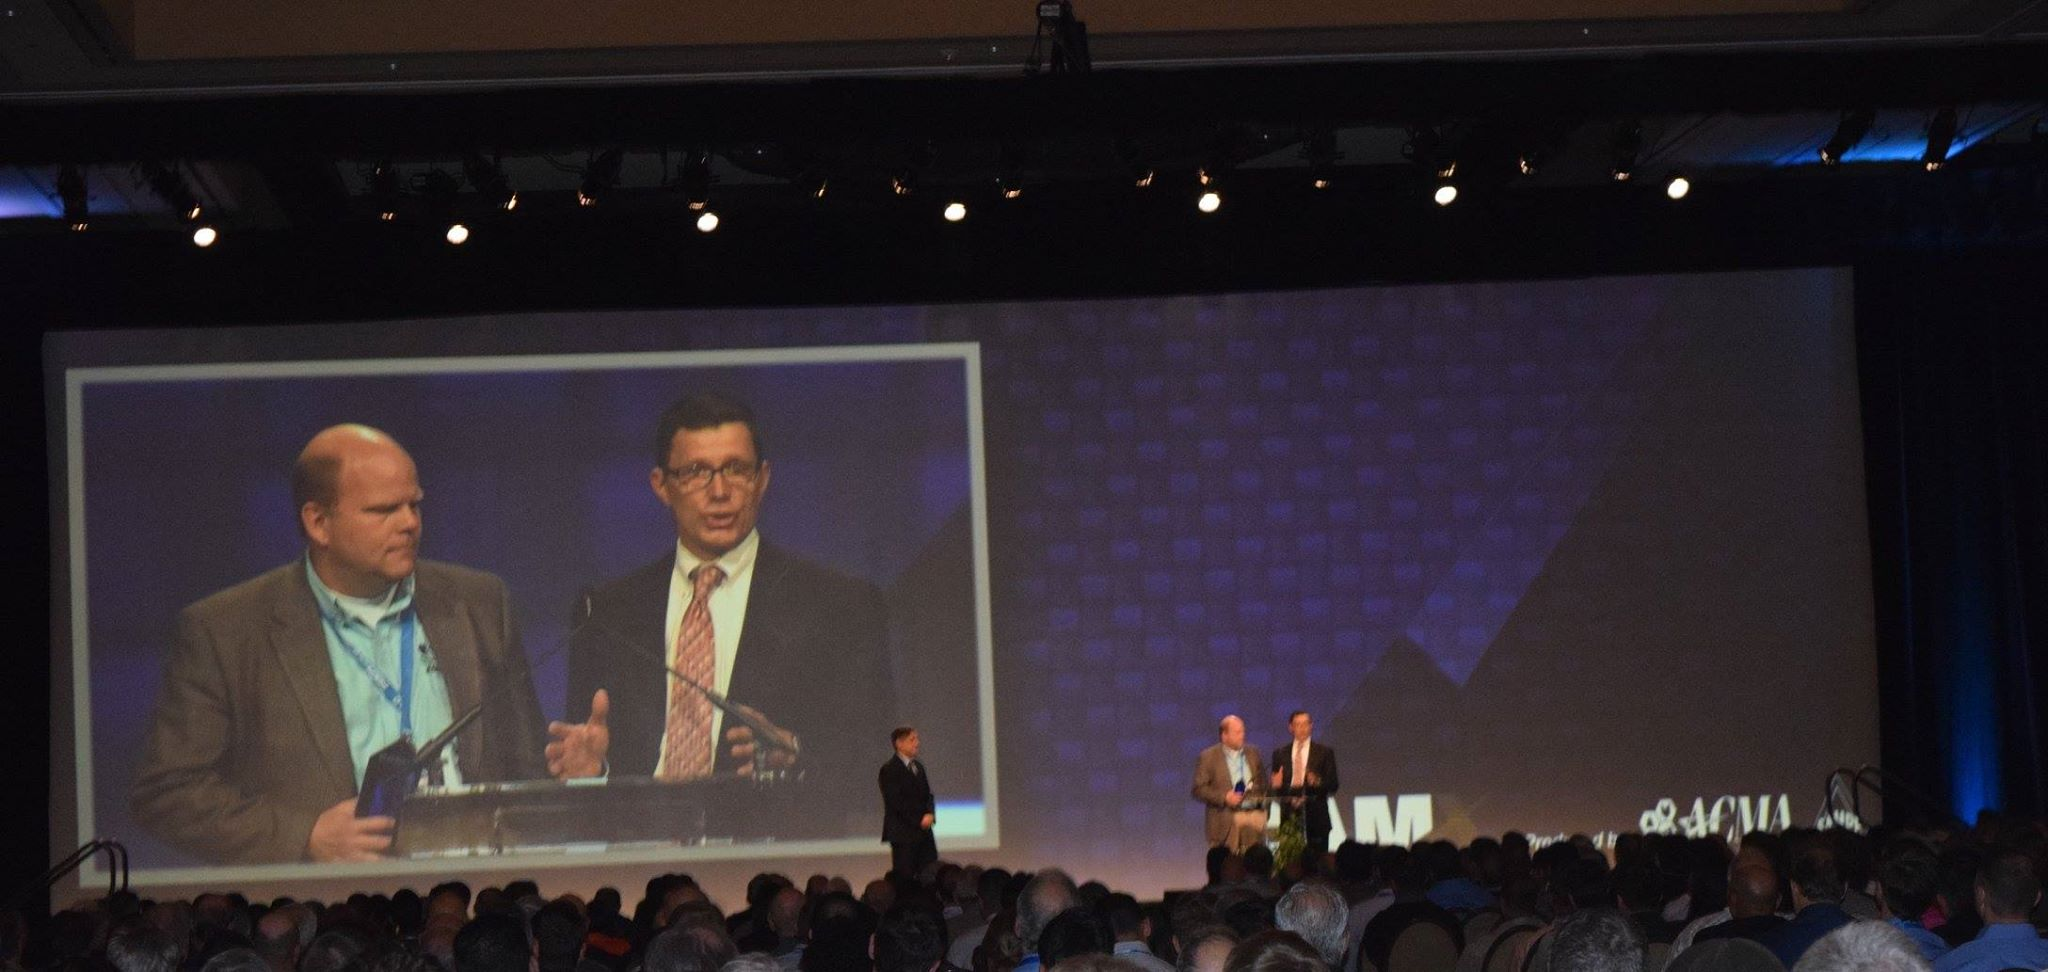 Lonnie Love (Oak Ridge National Lab)  and Rick Neff (Cincinnati Incorporated) Accepting the Combined Strength Award at CAMX